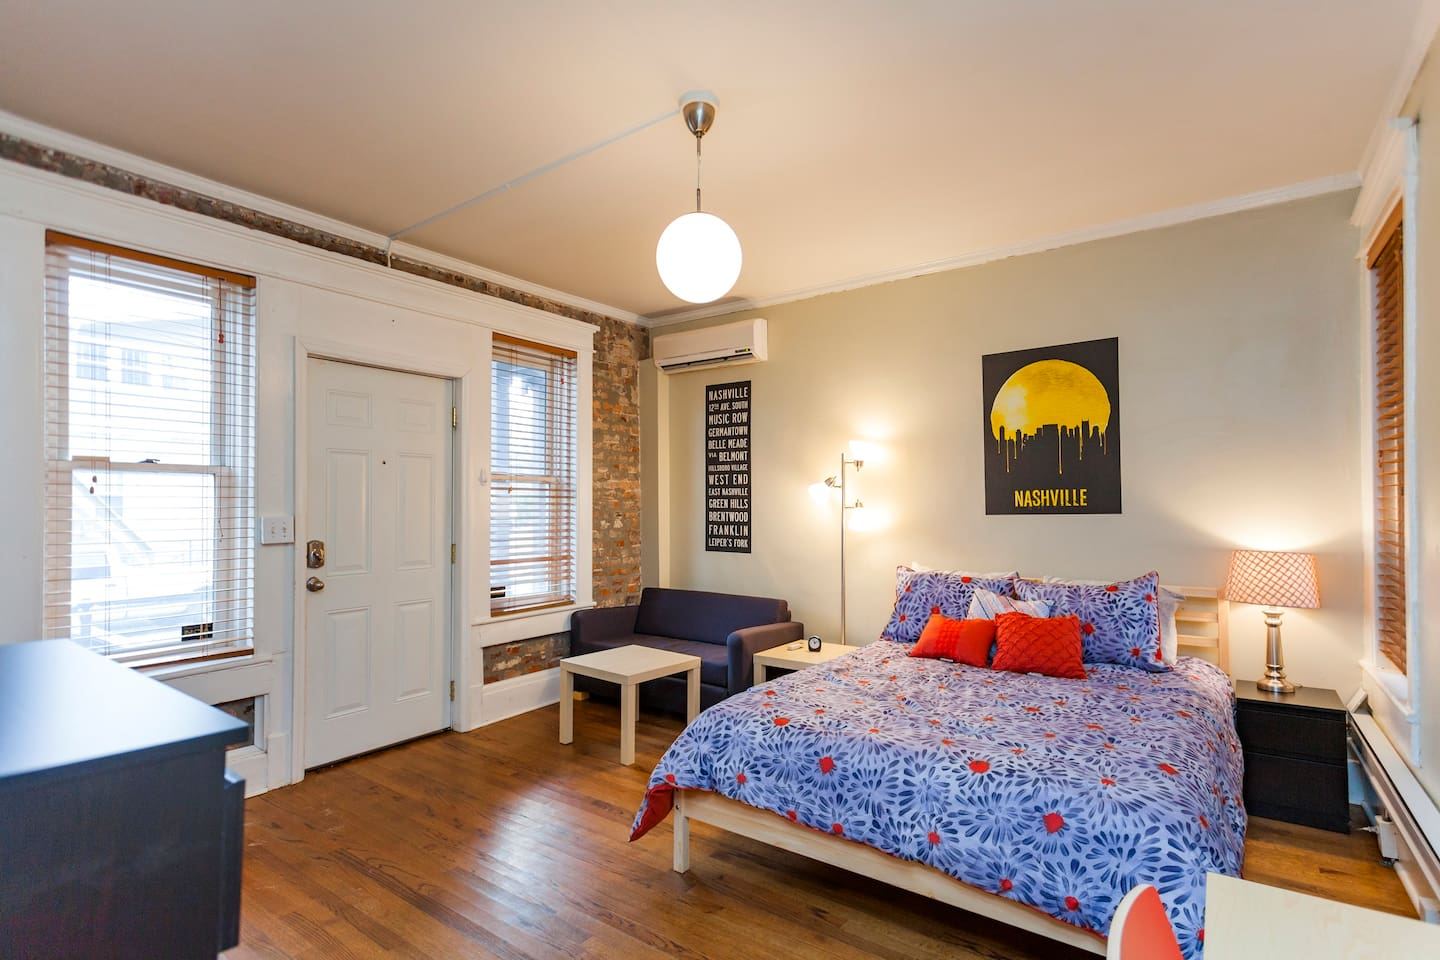 """""""The location is excellent and we had everything we needed in this small apartment. Everything was clean, there was a binder full of local suggestions, and most amenities were provided.""""  Permit #2016052661"""